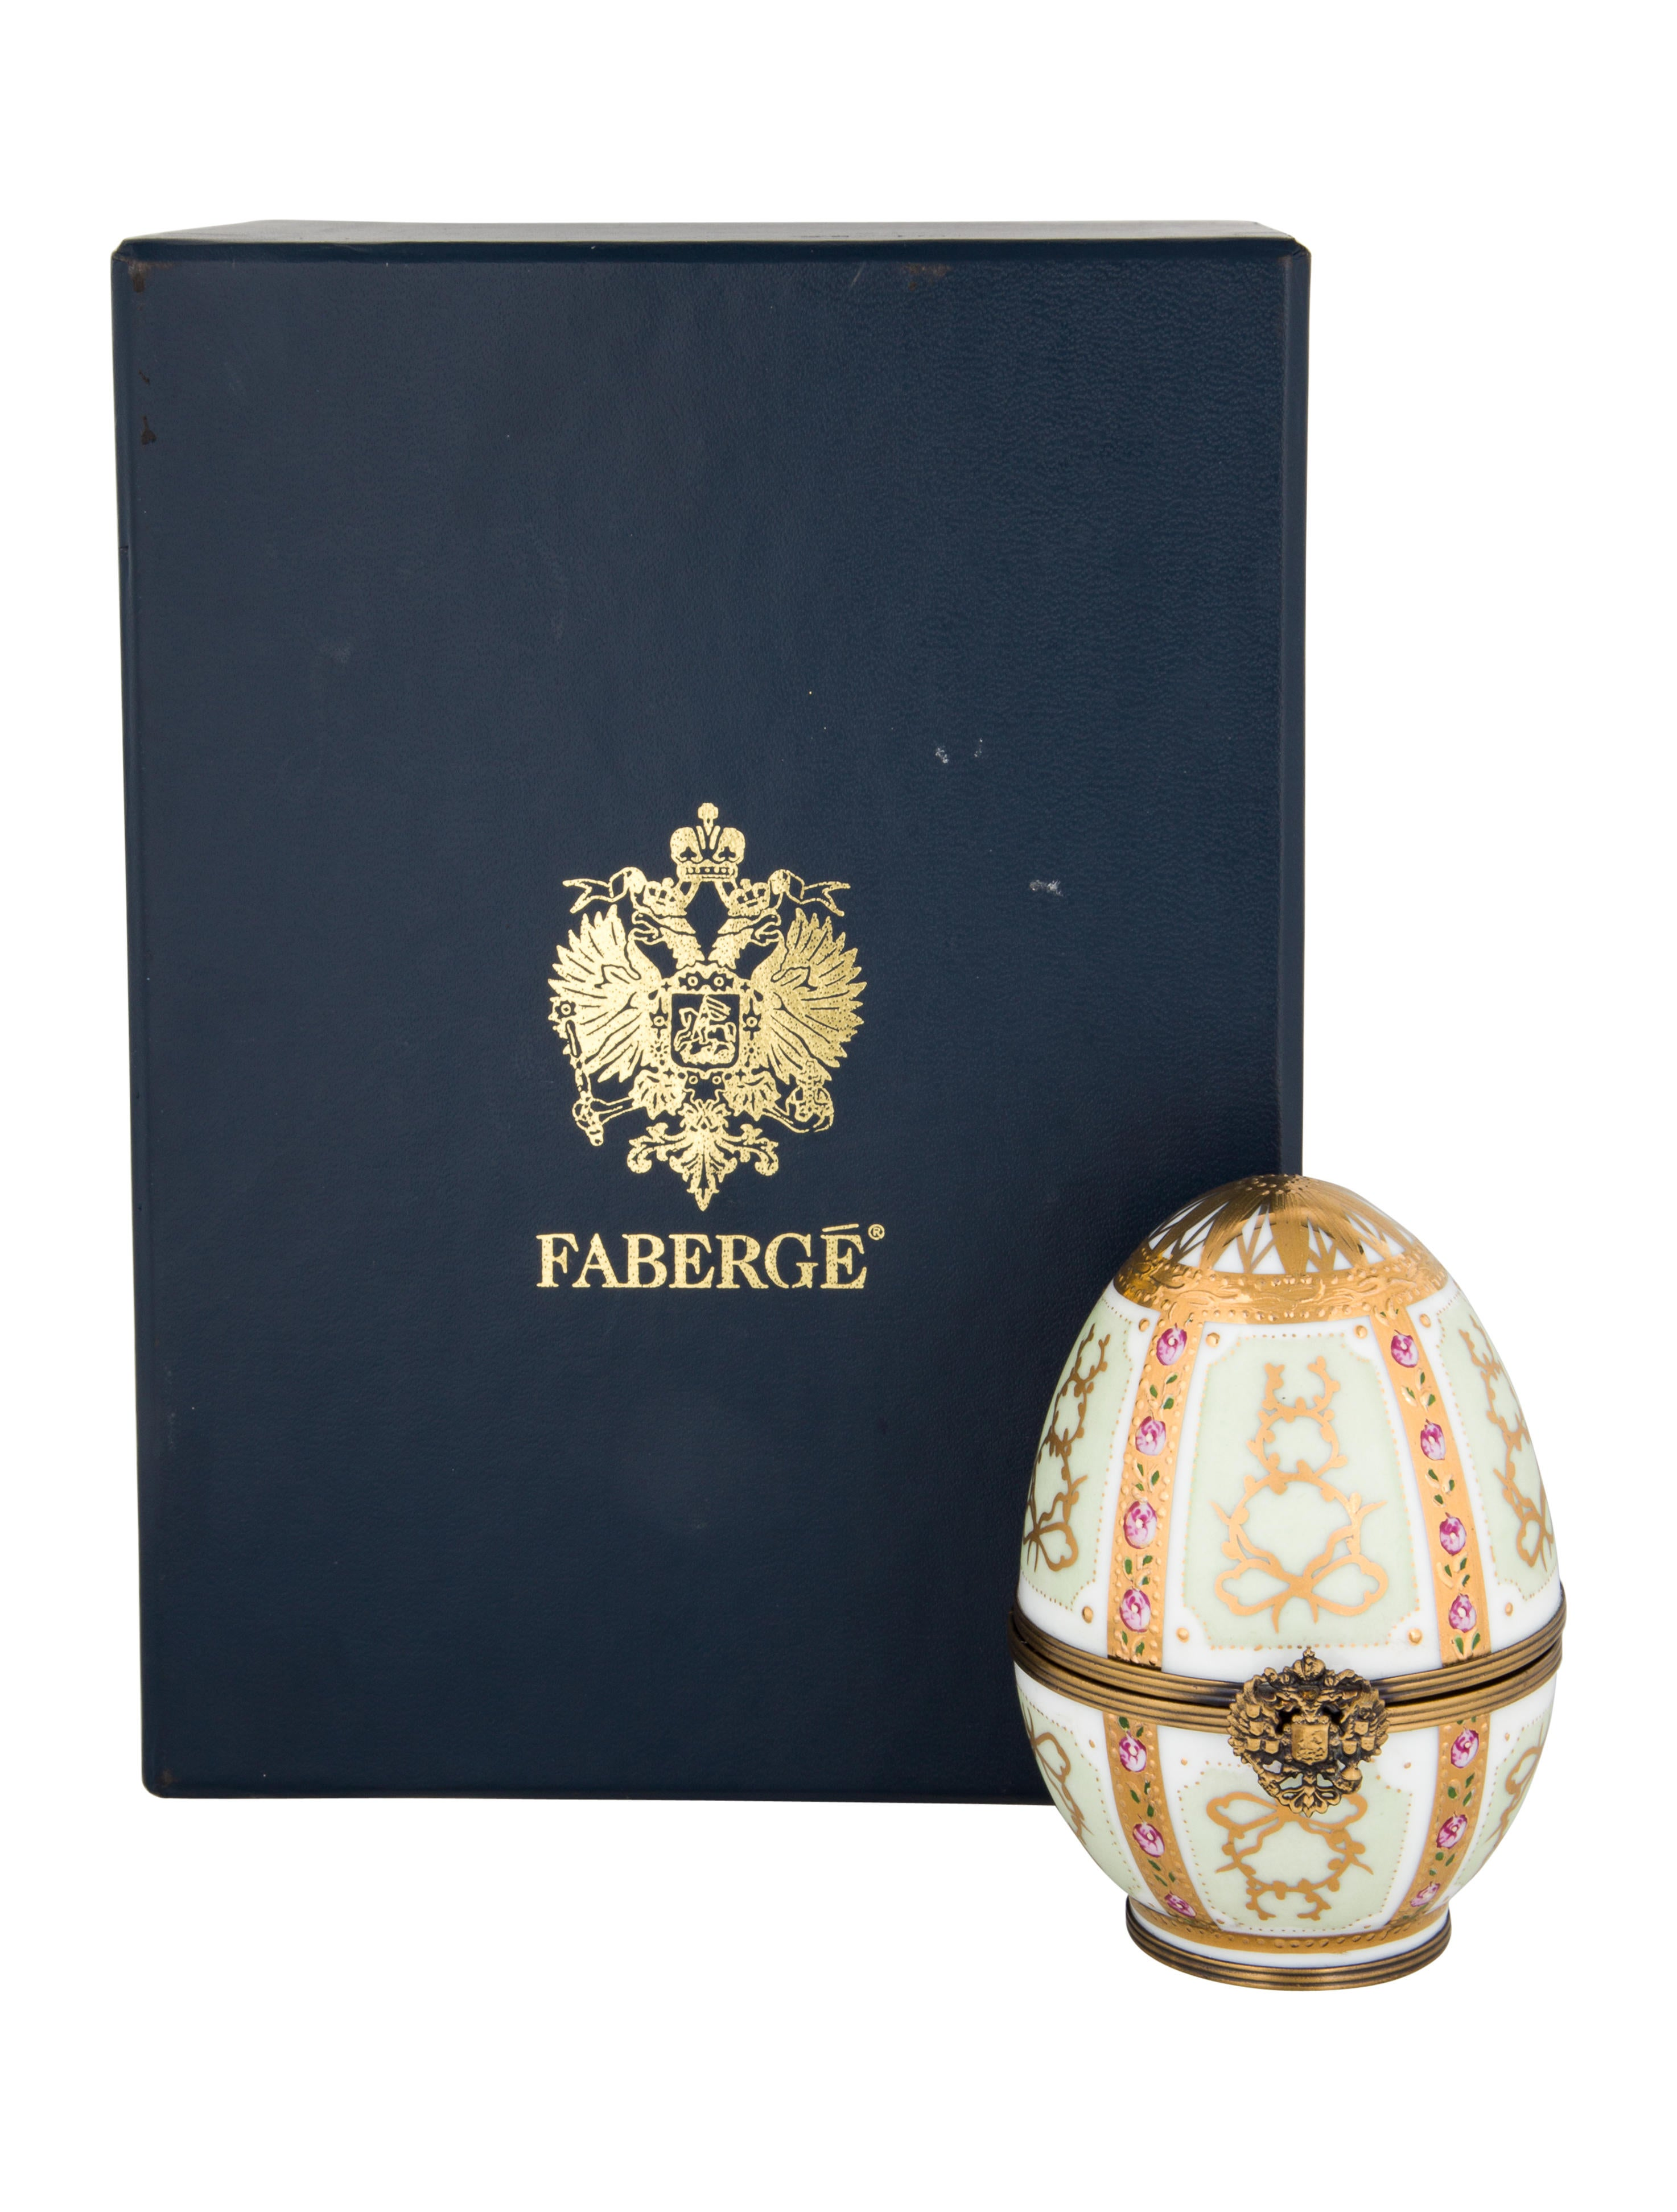 Fabergé Porcelain Limoges Hand-Painted Egg - Decor And Accessories ...